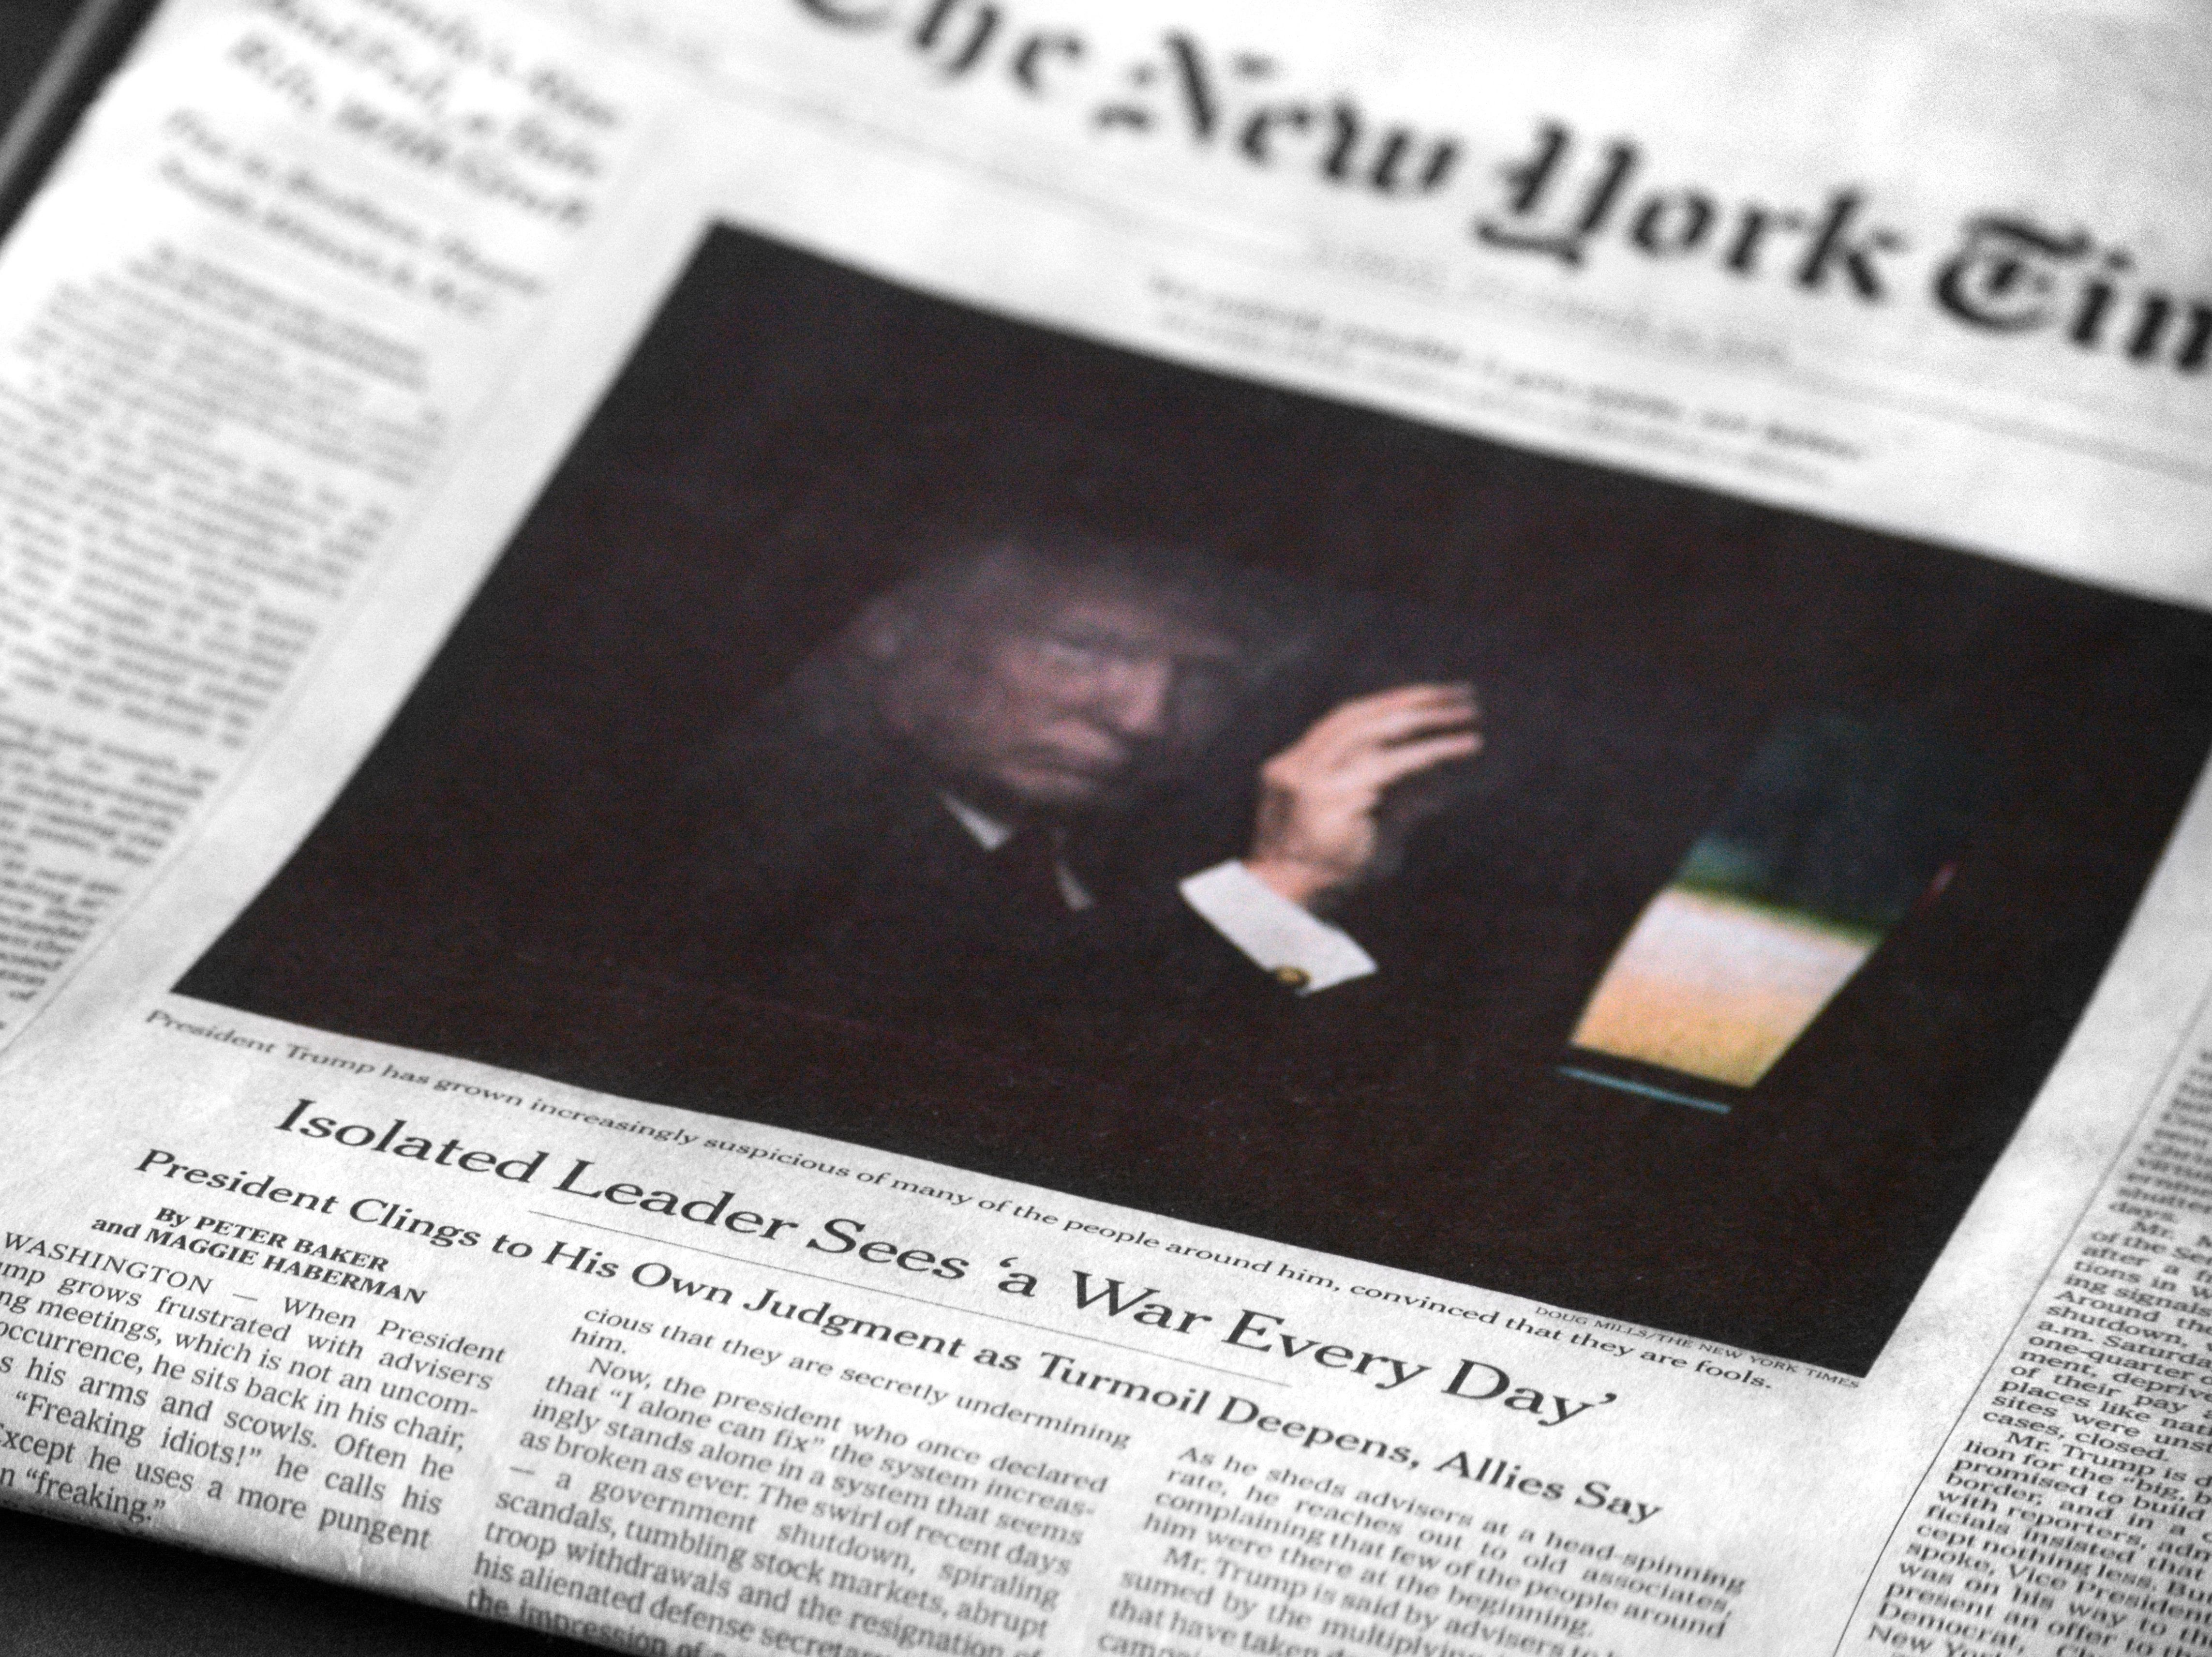 NY Times Publisher Slams Trump's Anti-Media Rhetoric As Tyrannical,